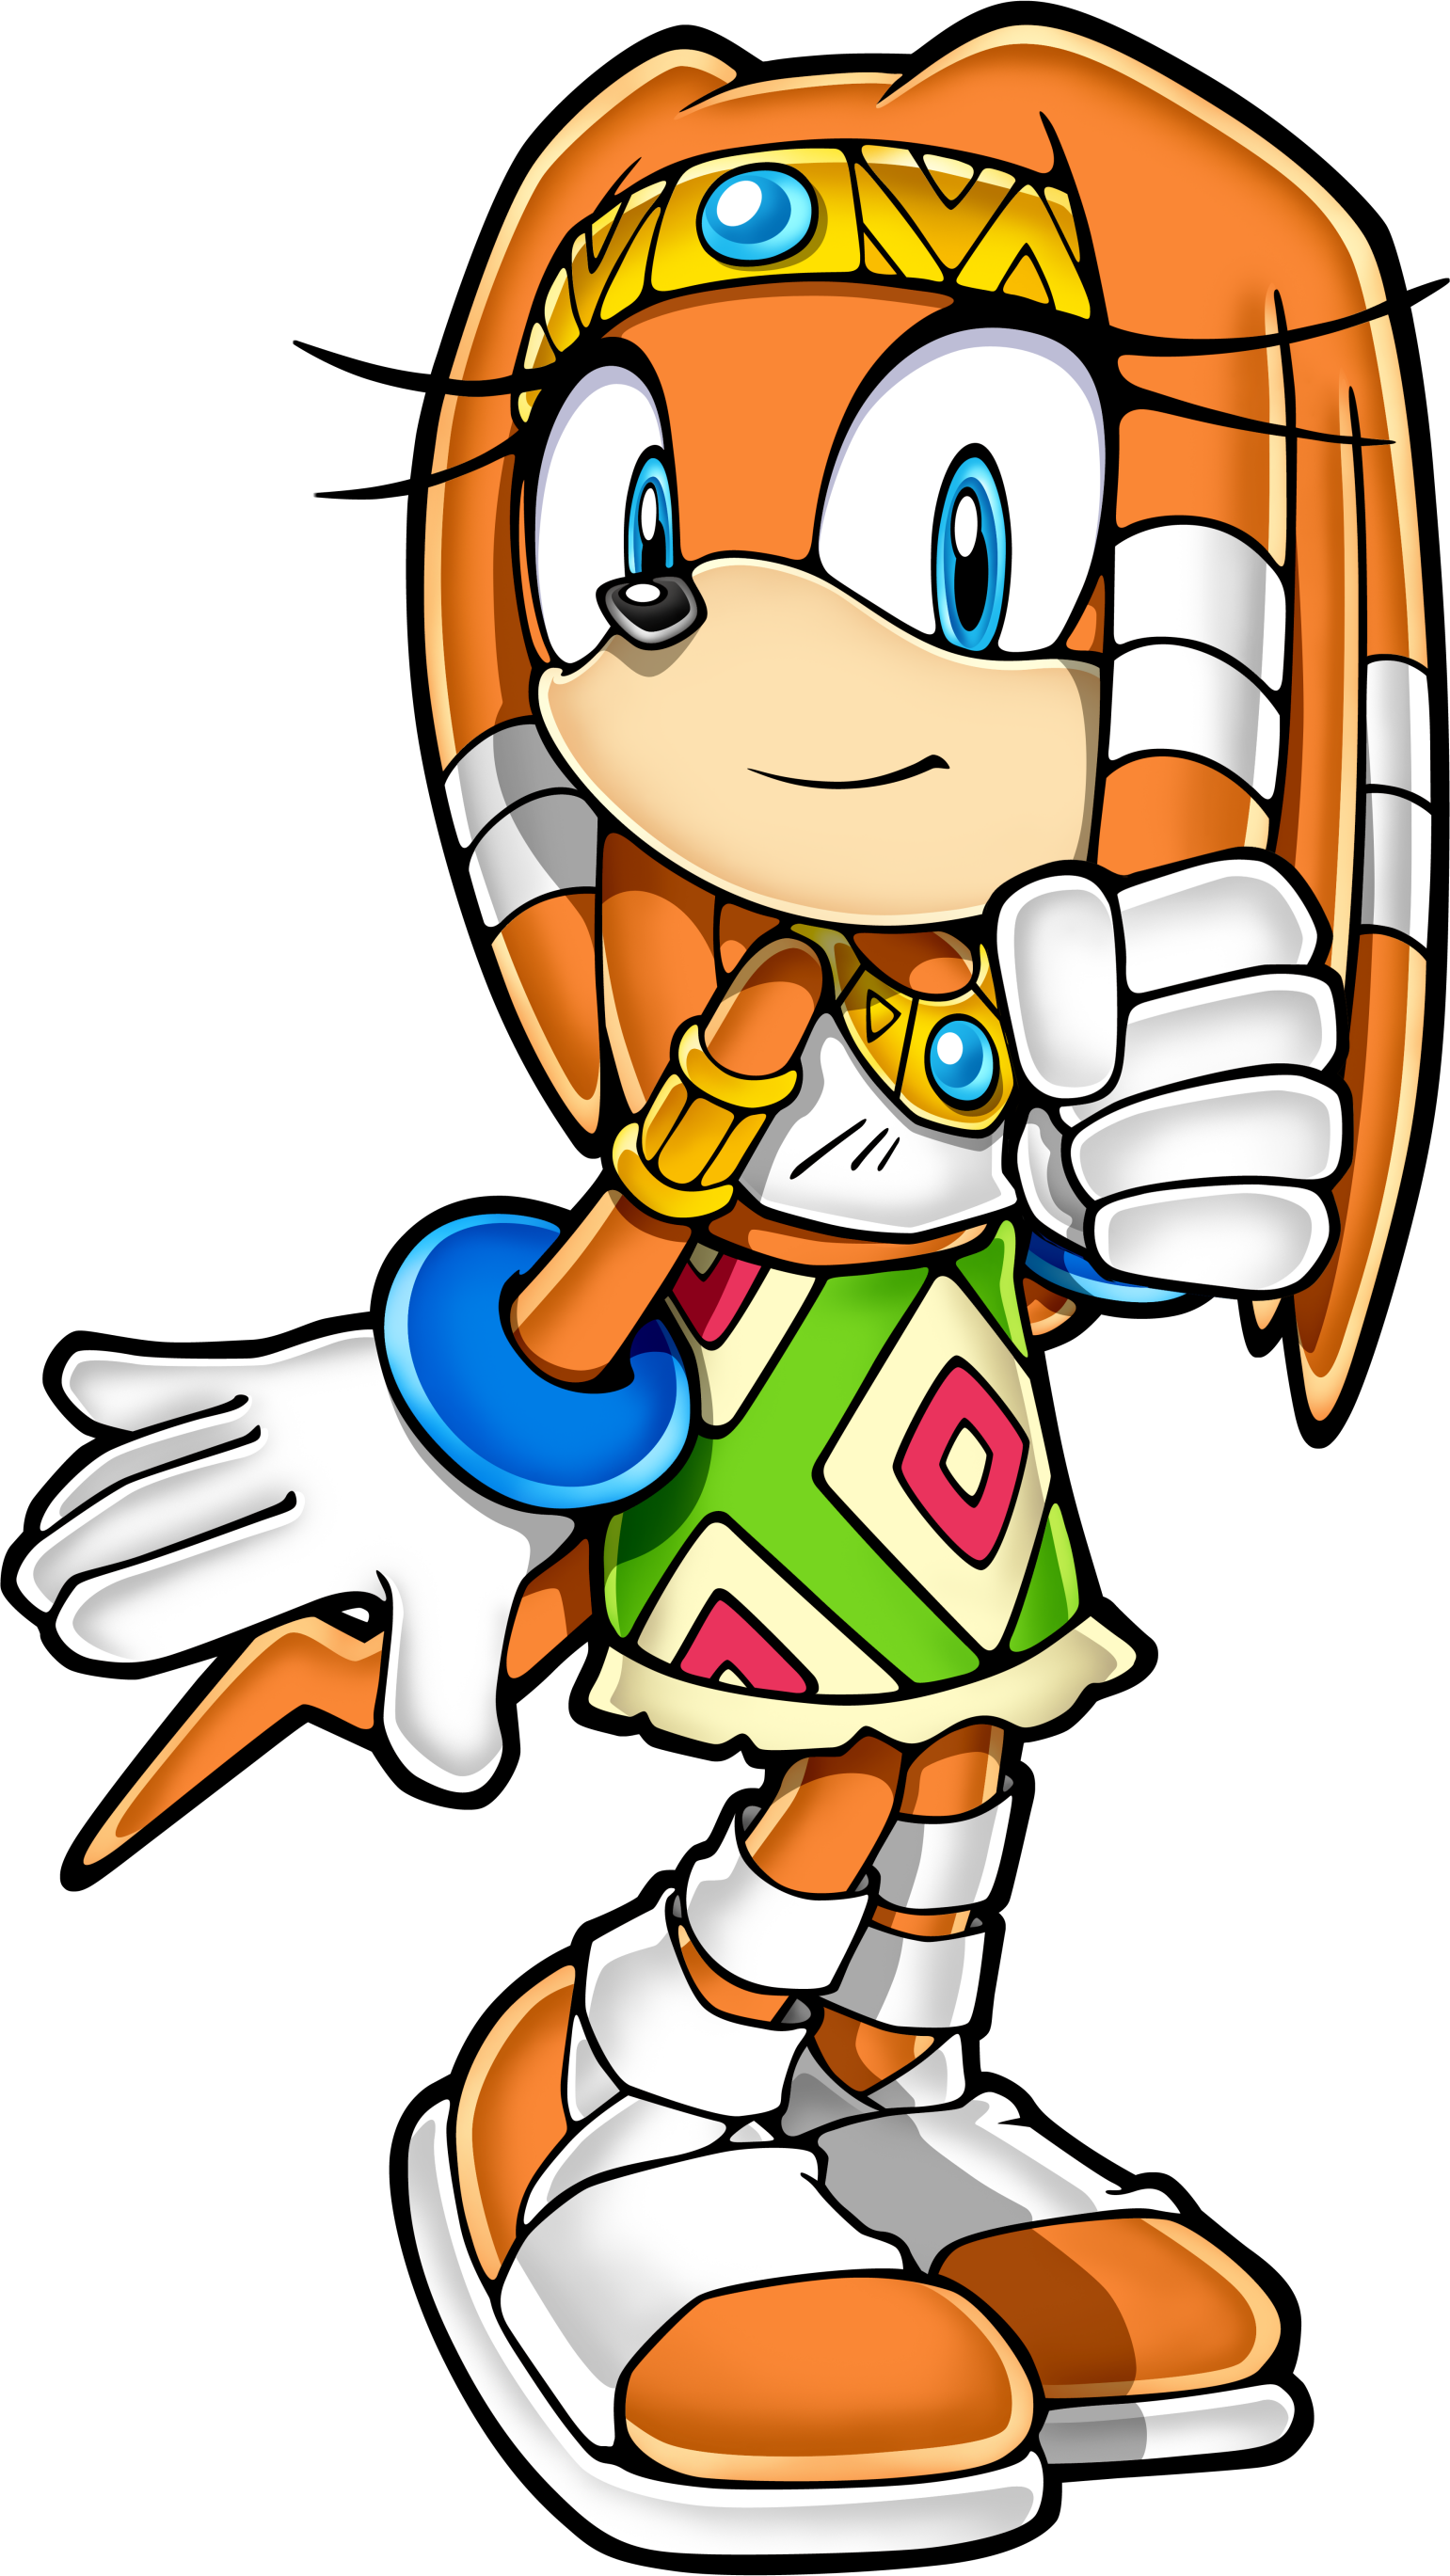 Tikal the Echidna - Sonic News Network, the Sonic Wiki